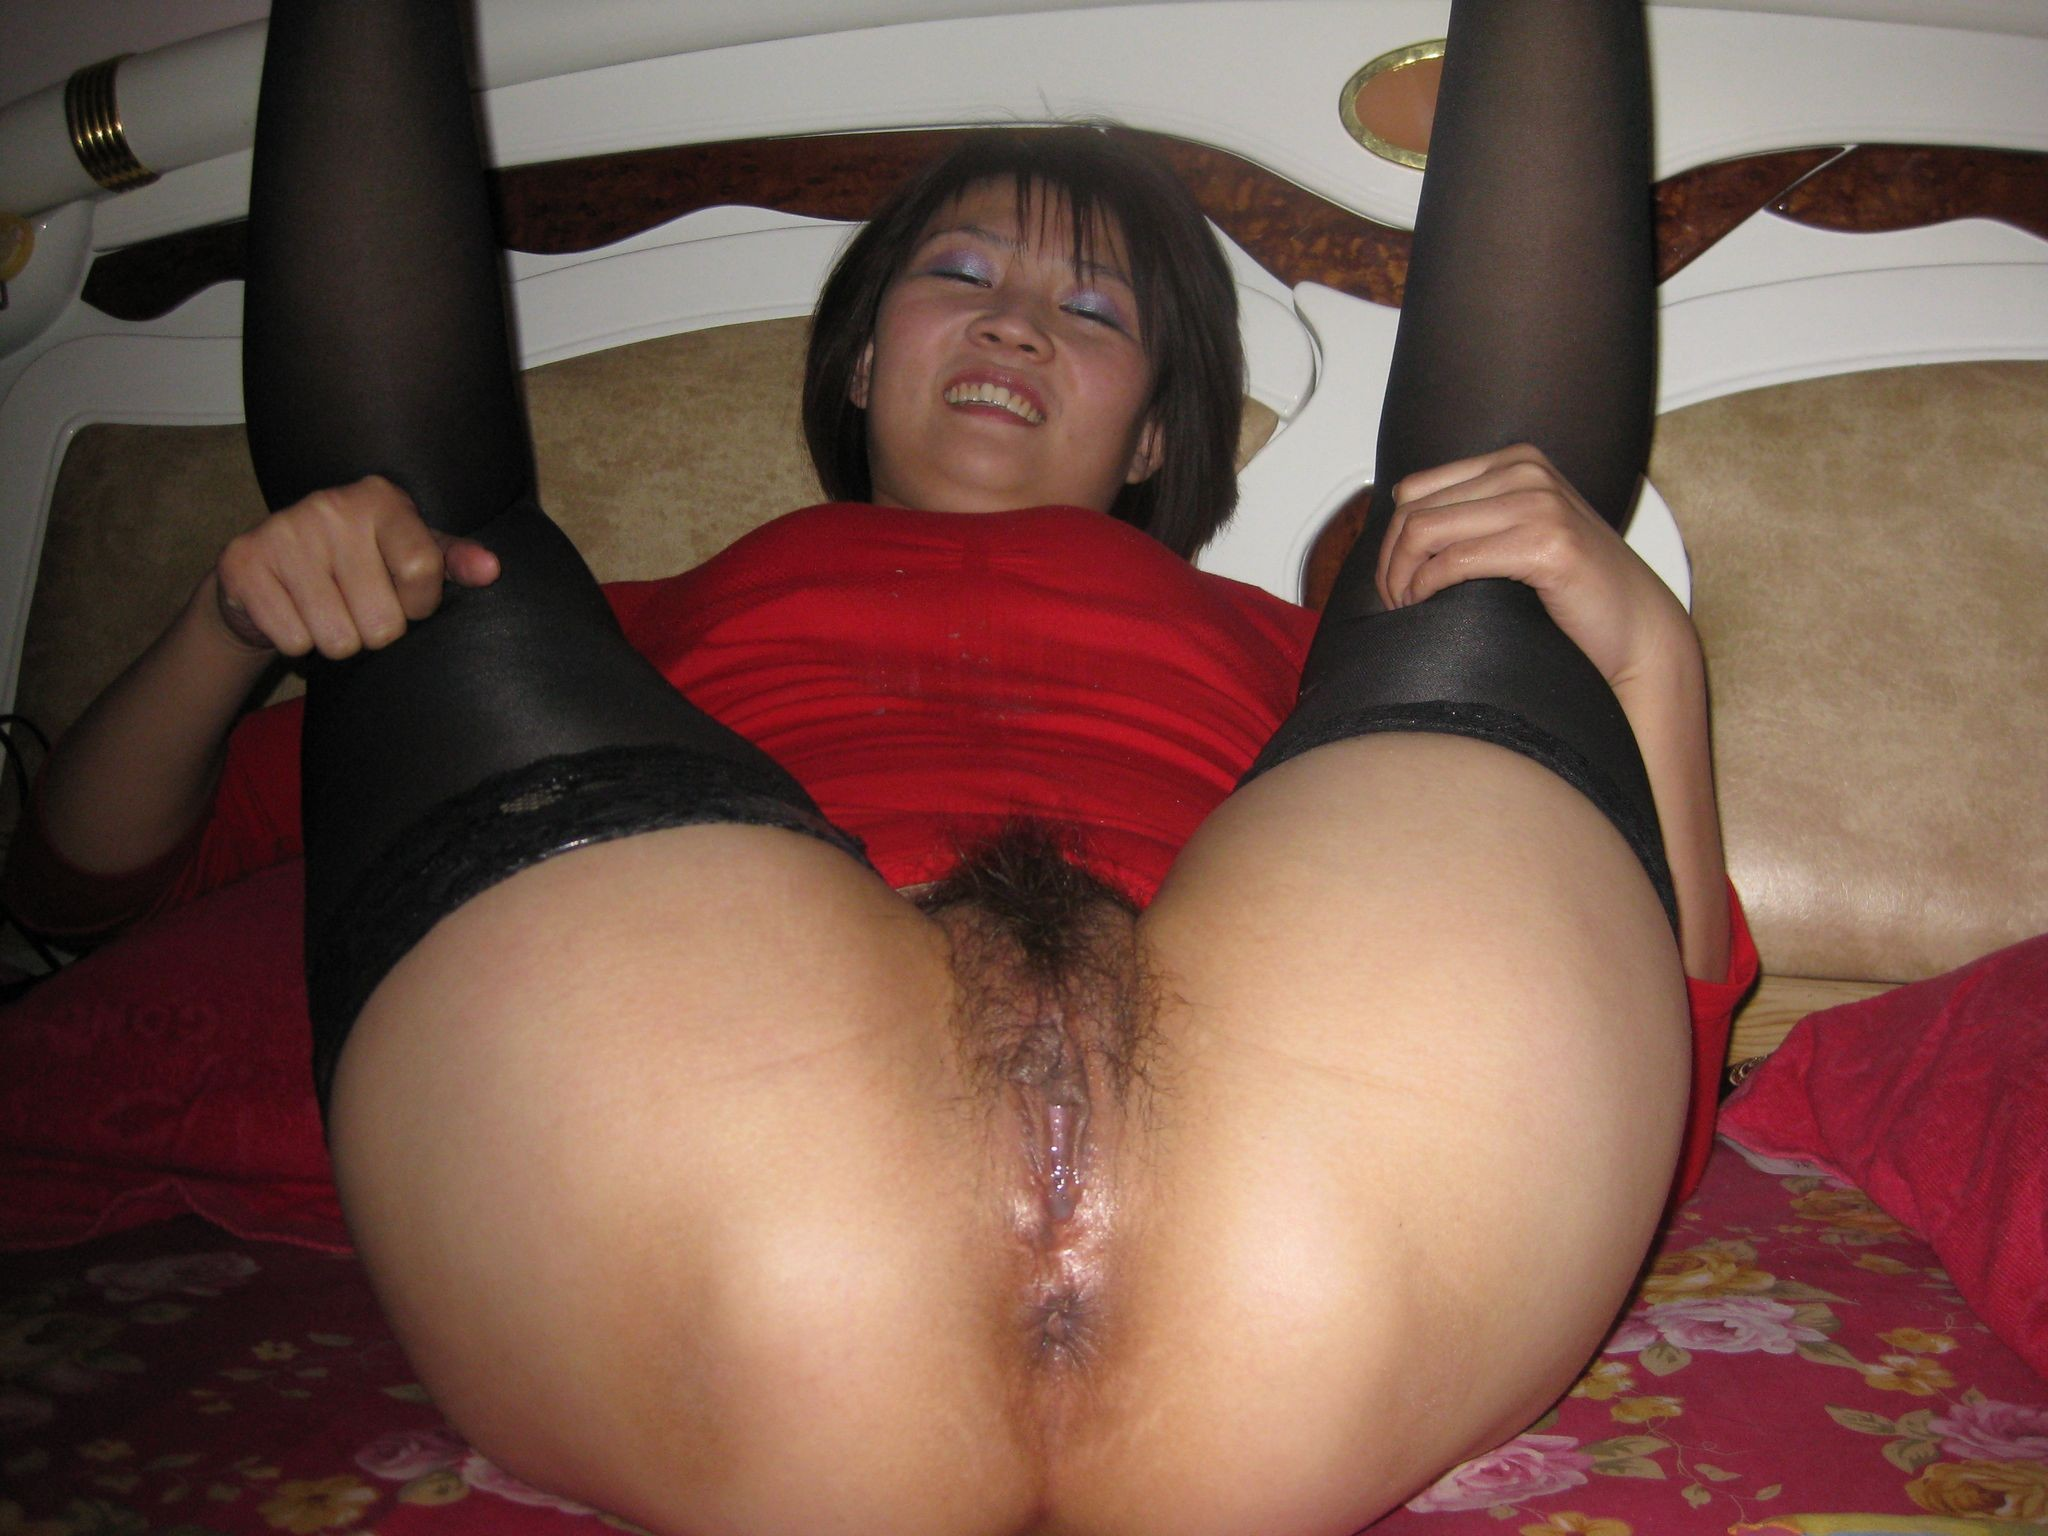 Dirty talk sexy asian maid